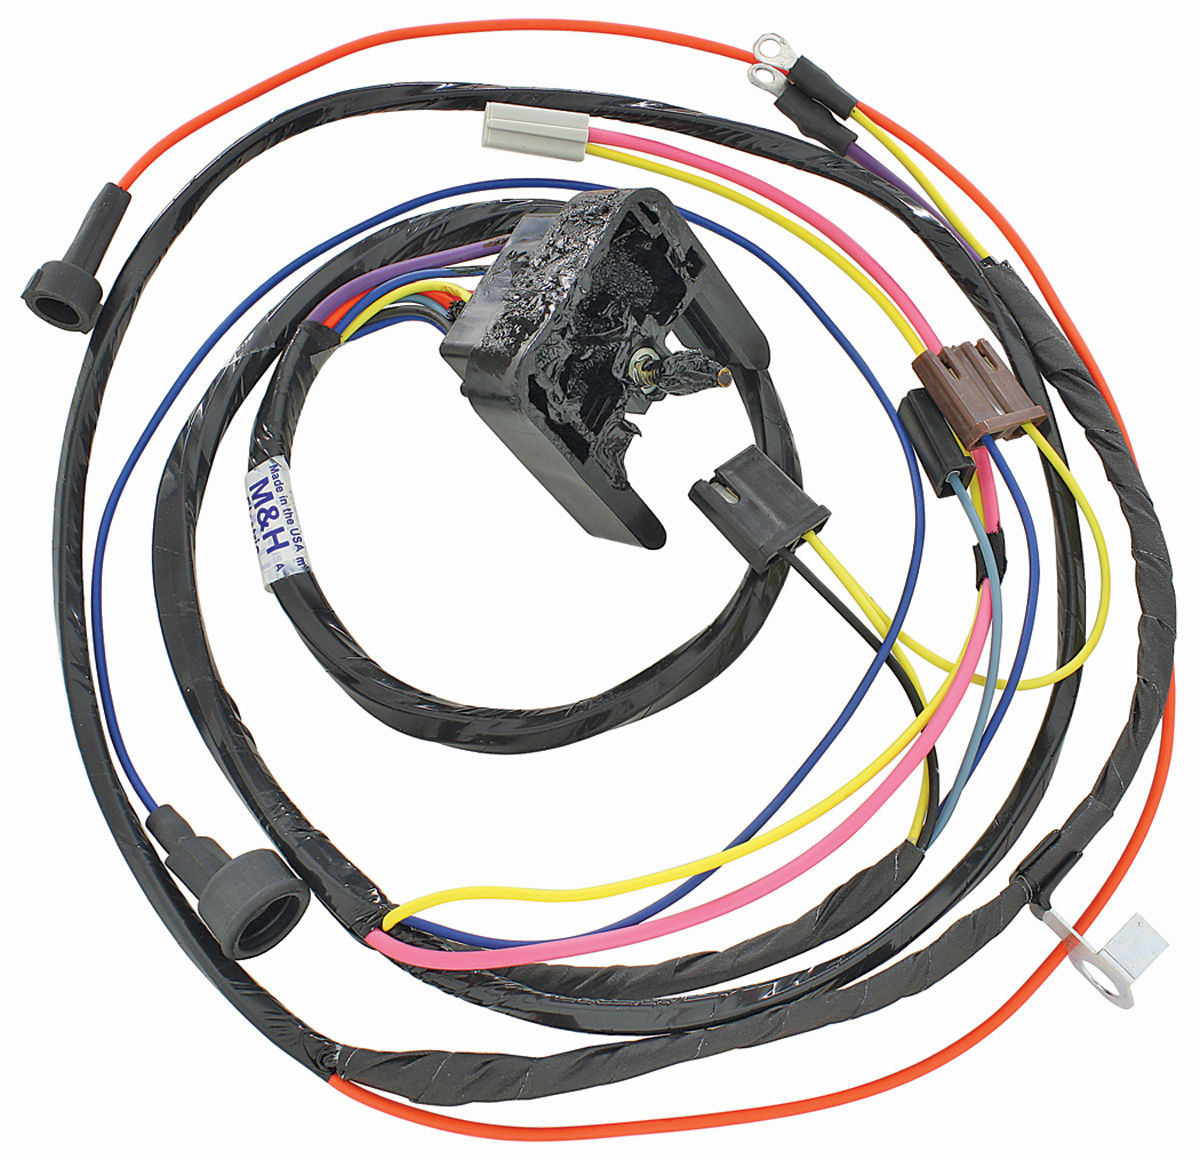 38947 lrg?v=102520130818 m&h 1968 69 chevelle engine harness 396 hei w warning lights 1972 chevelle wiring harness at mifinder.co